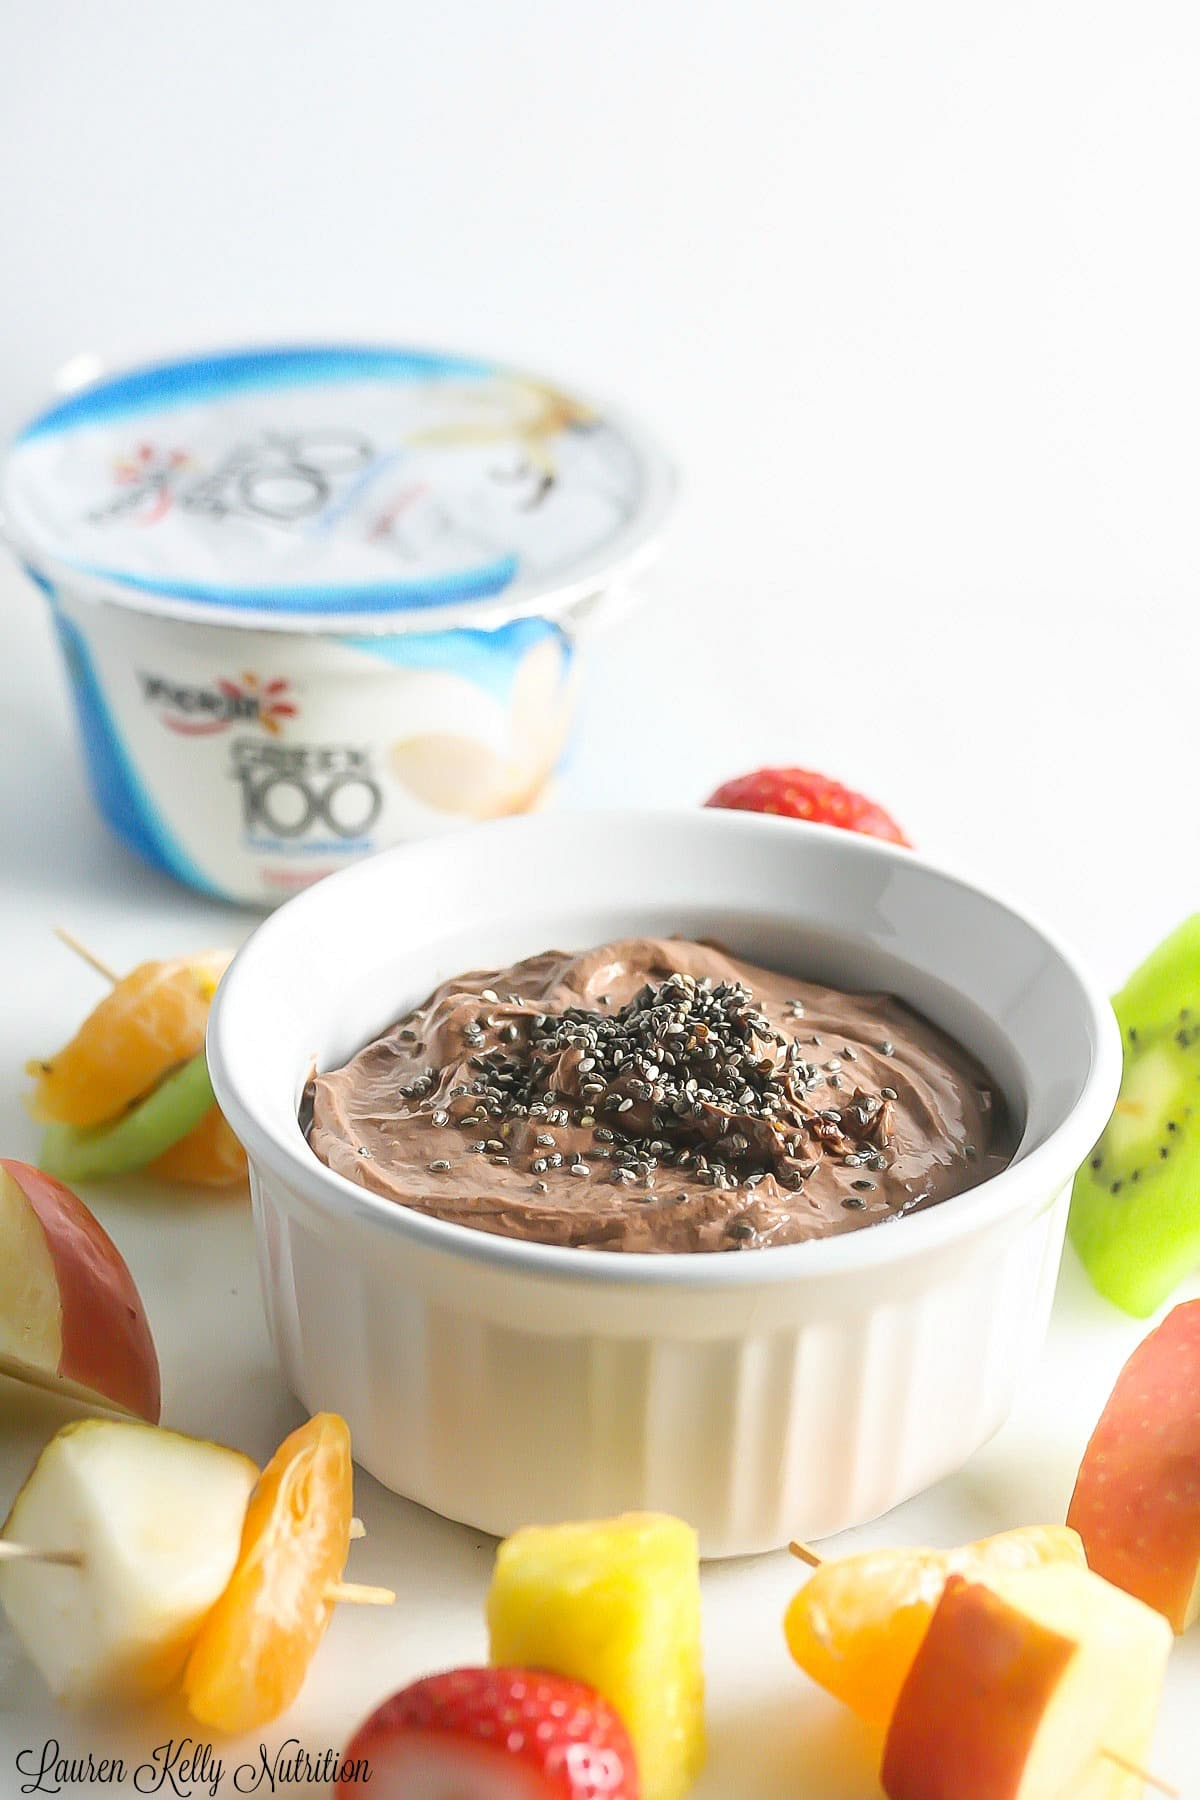 This Chocolate Peanut Butter Dip is packed with protein, antioxidants and fiber and taste DELICIOUS! www.laurenkellynutrition.com